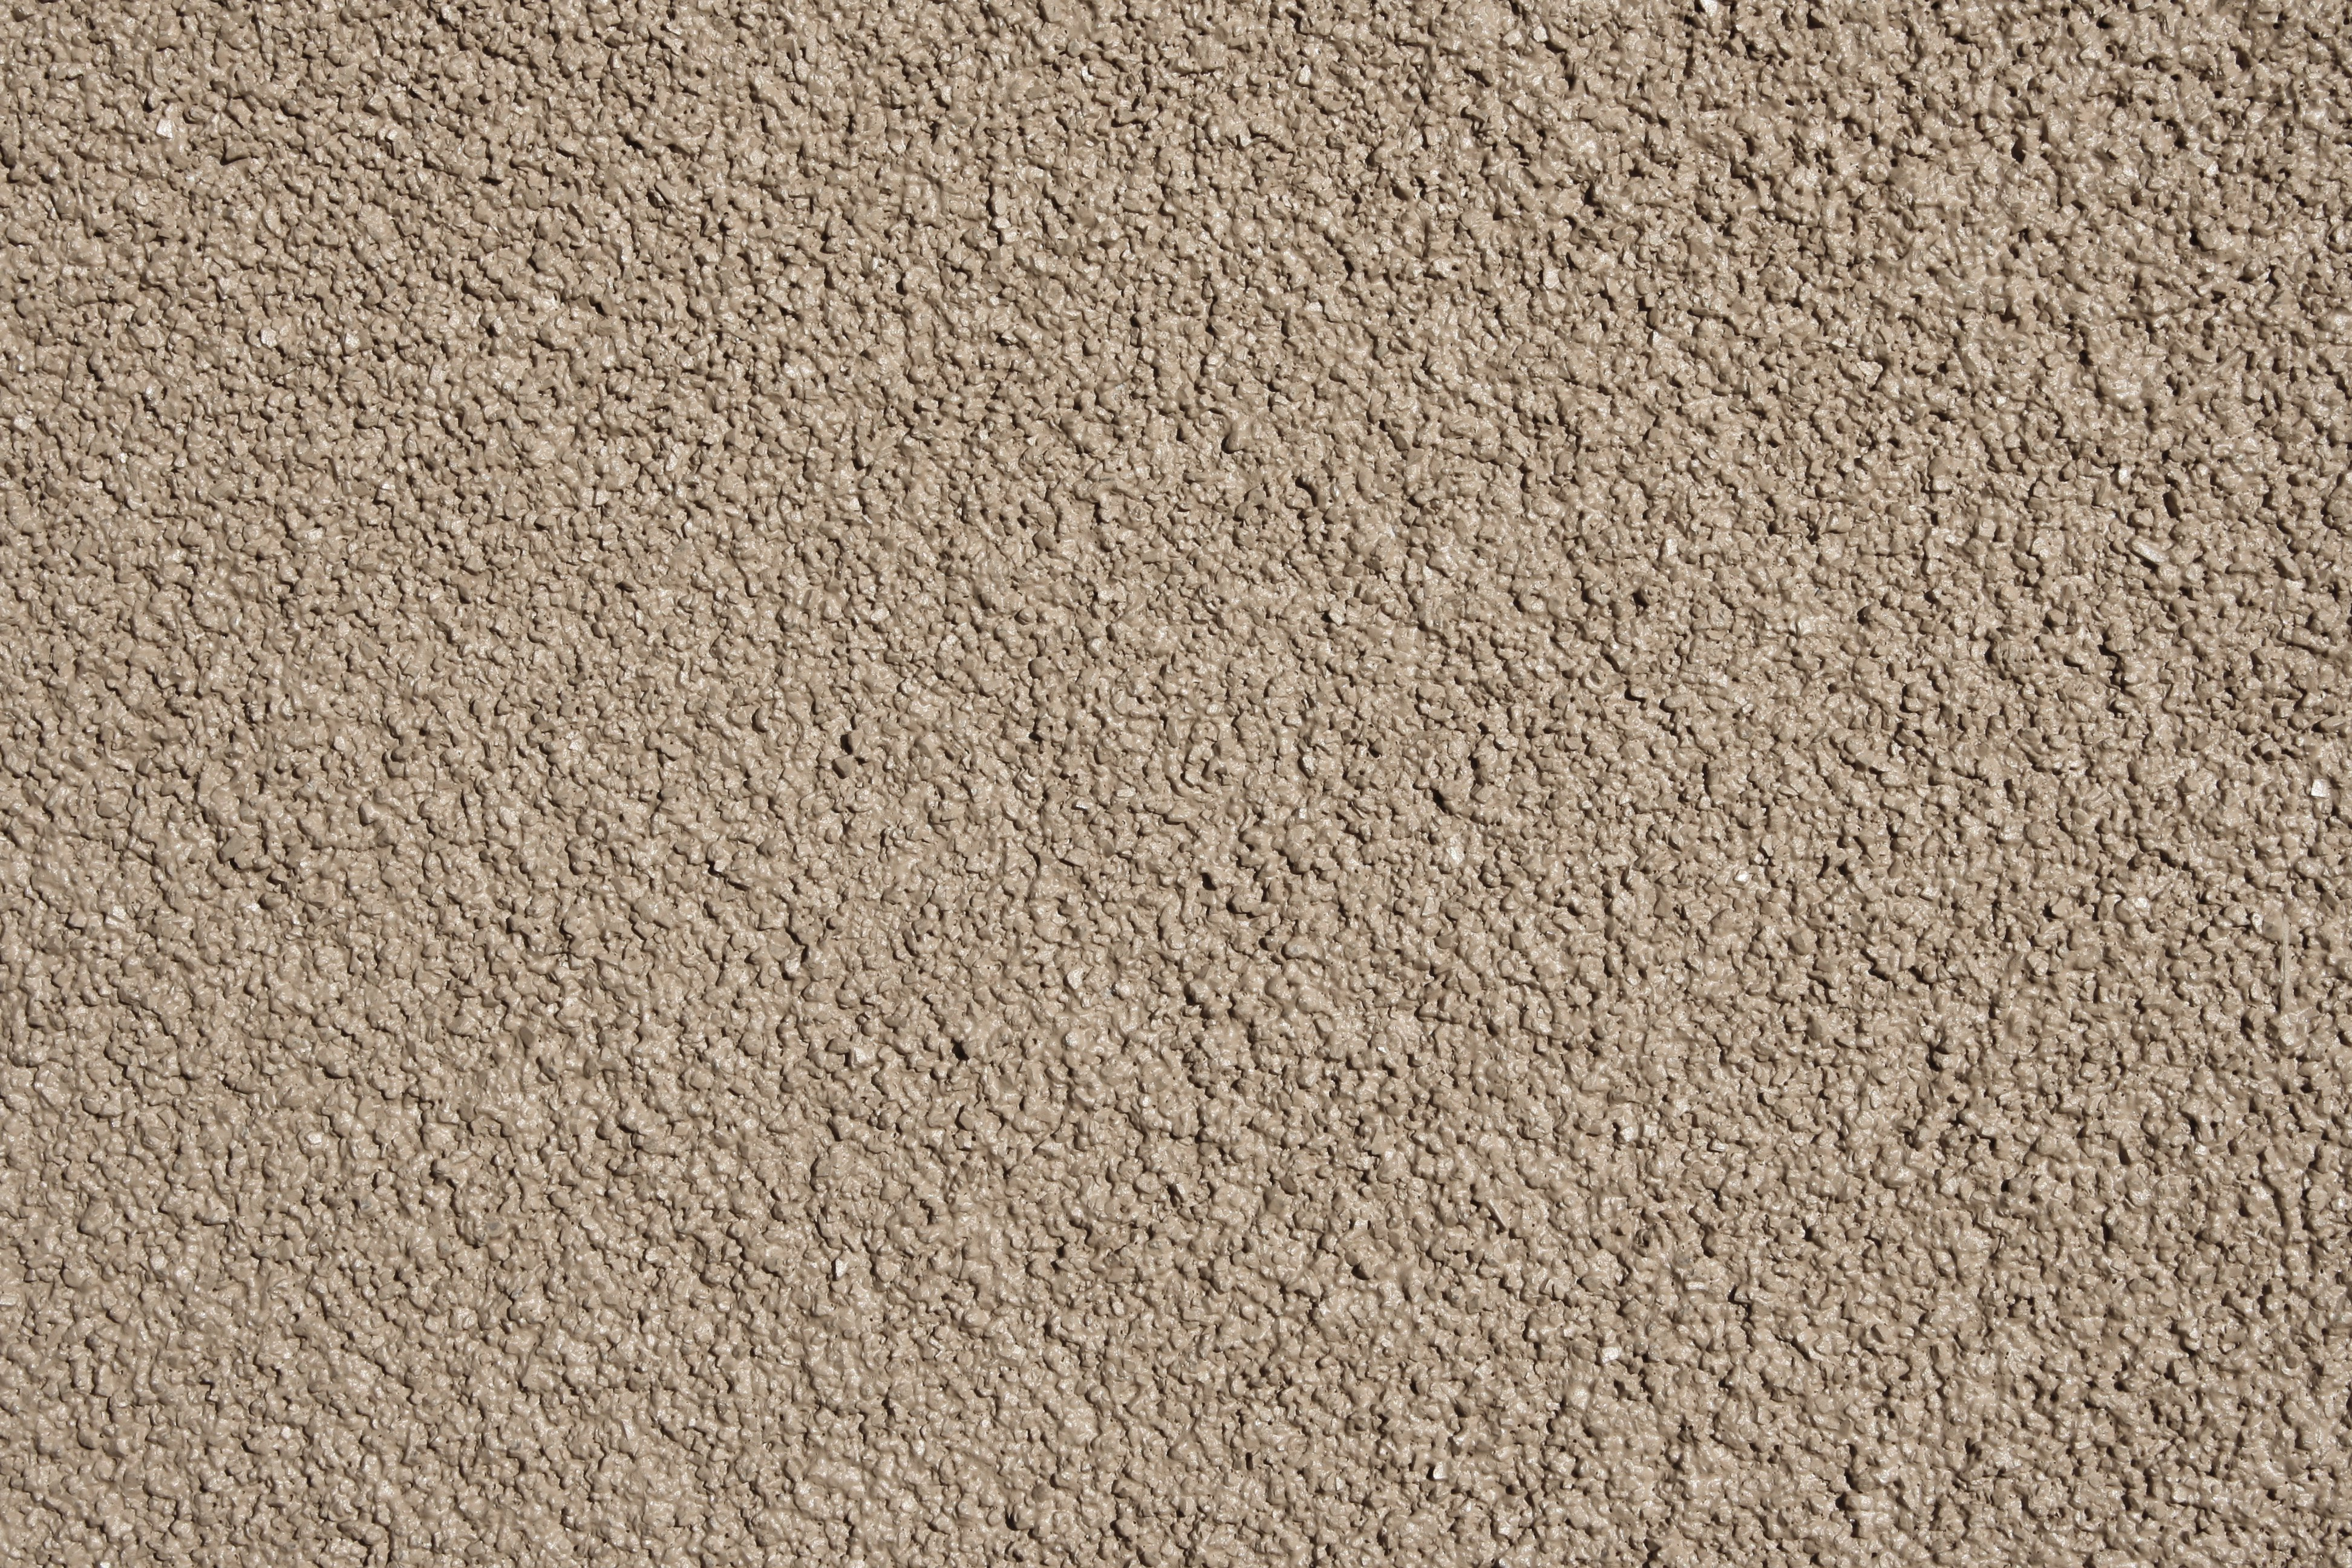 beige stucco close up texture picture free photograph